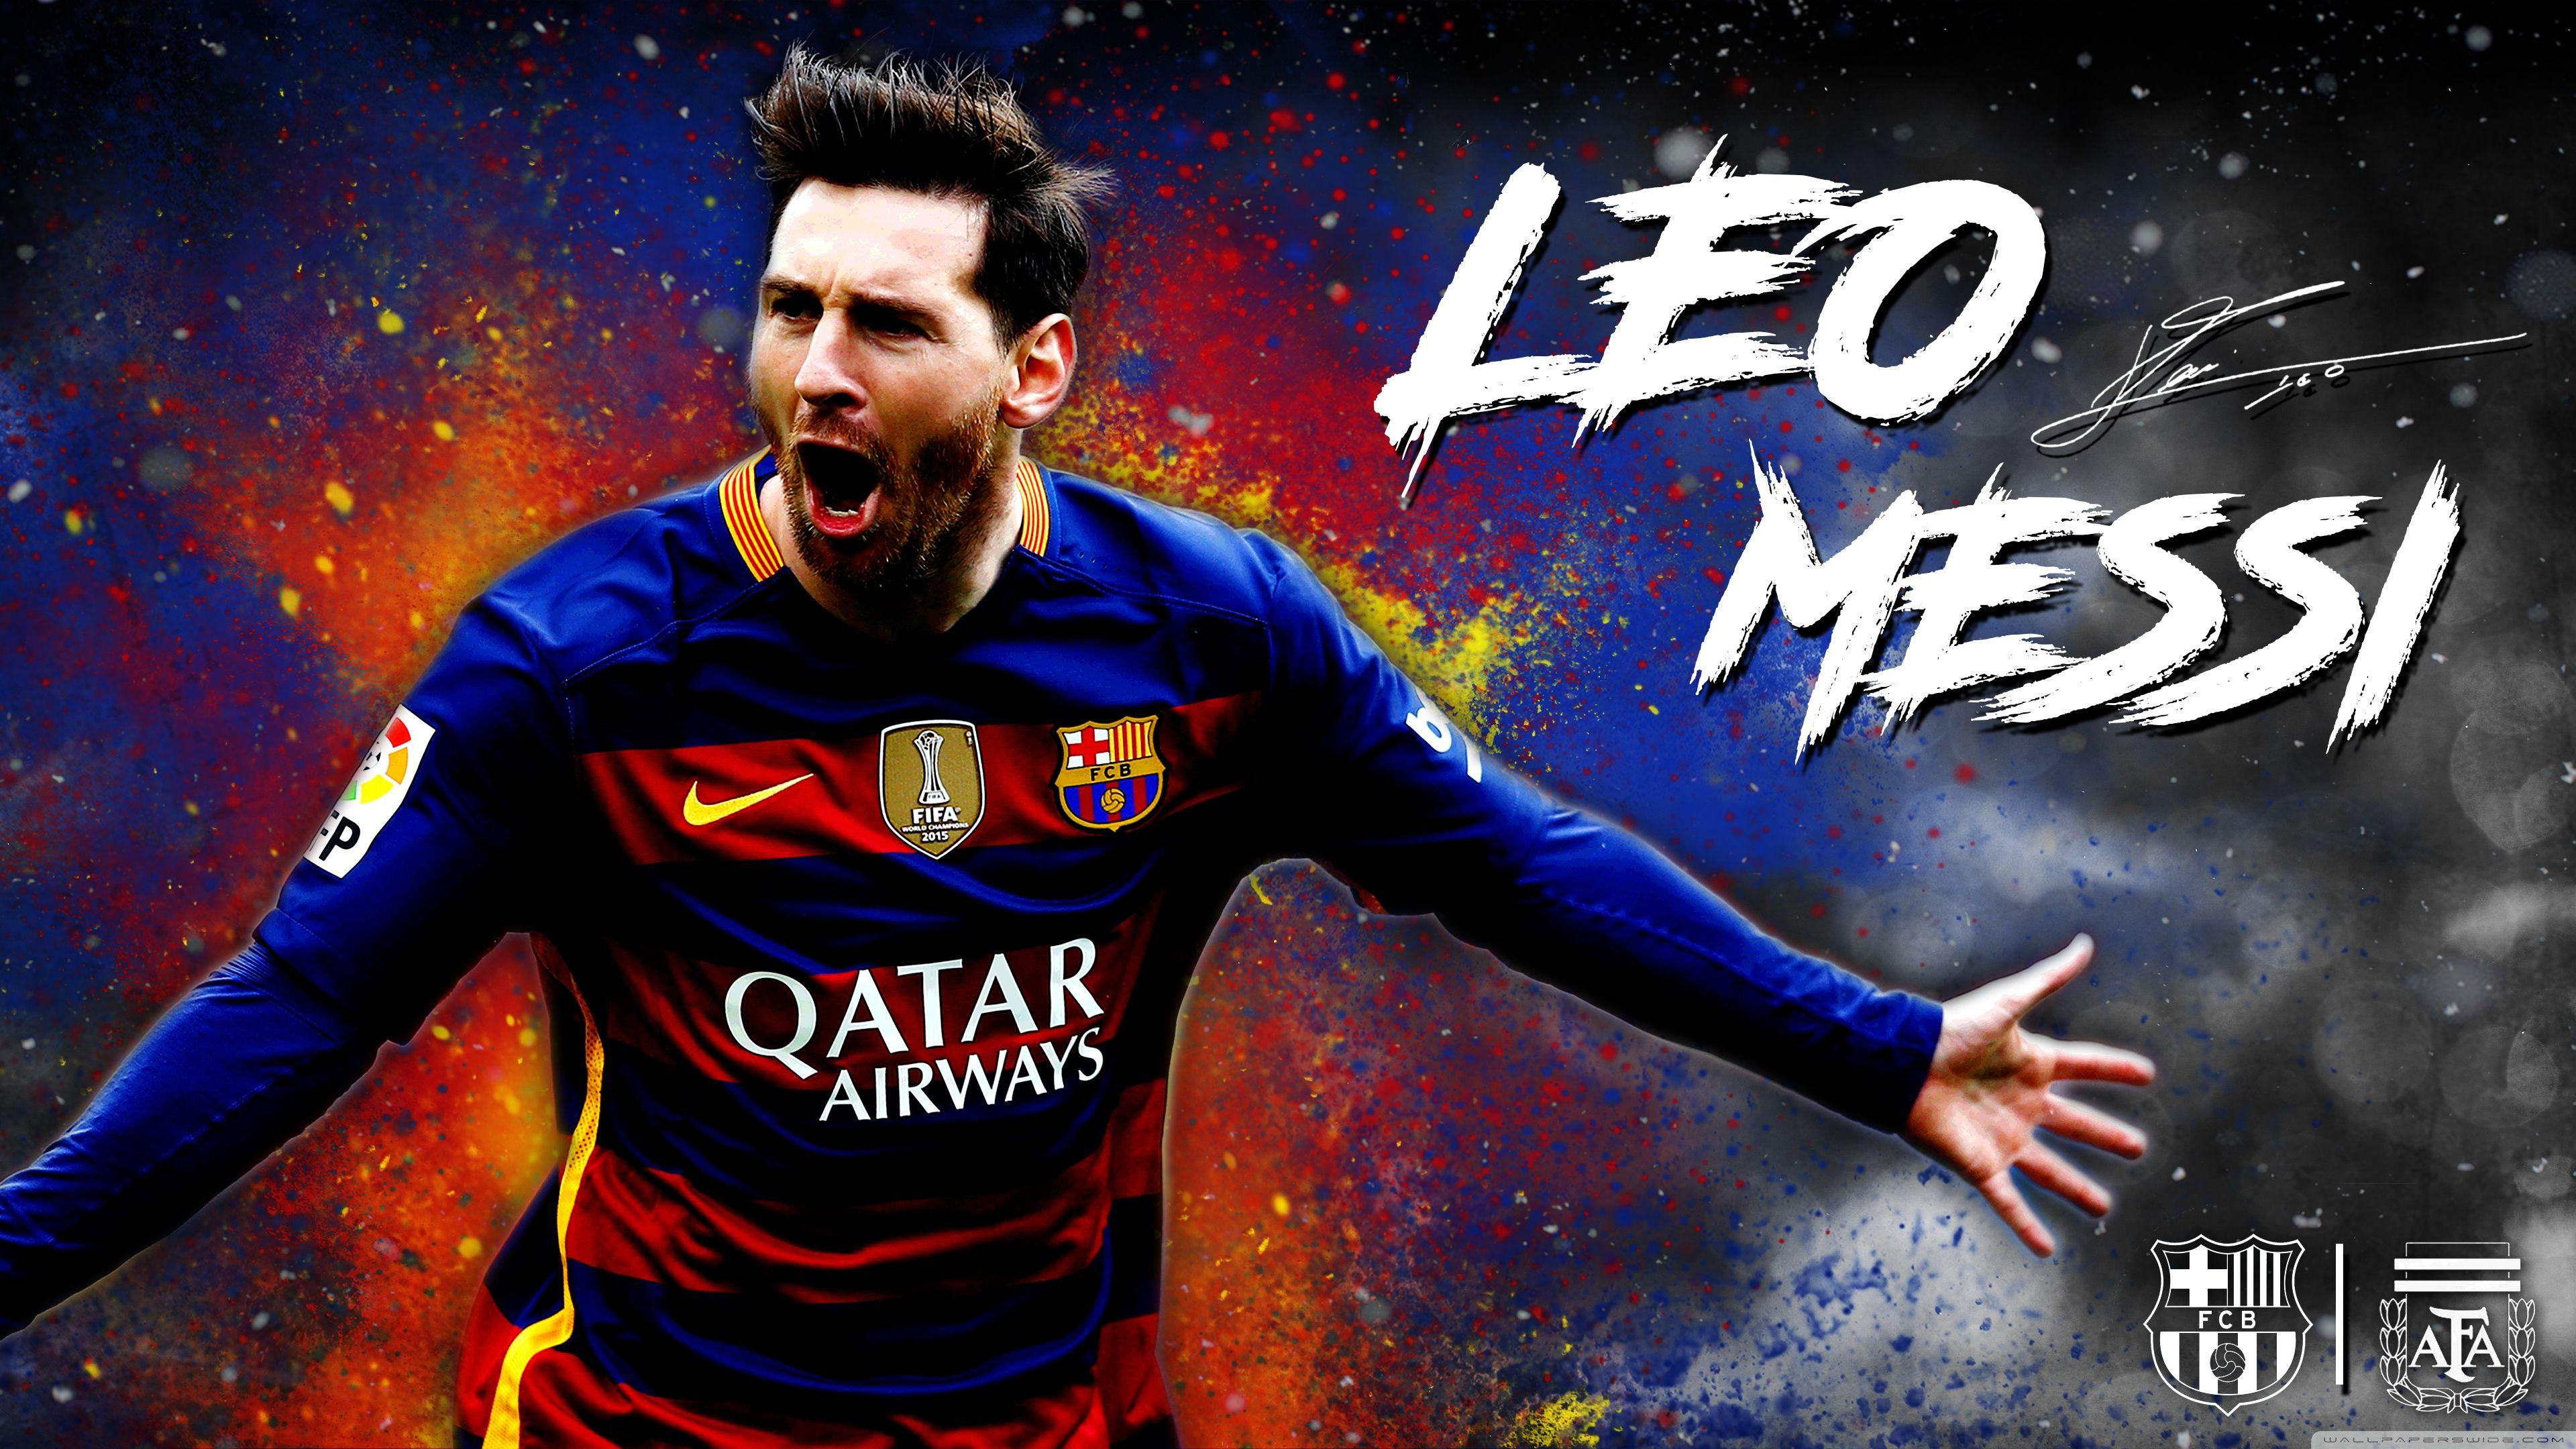 Messi 4k Wallpapers Wallpaper Cave